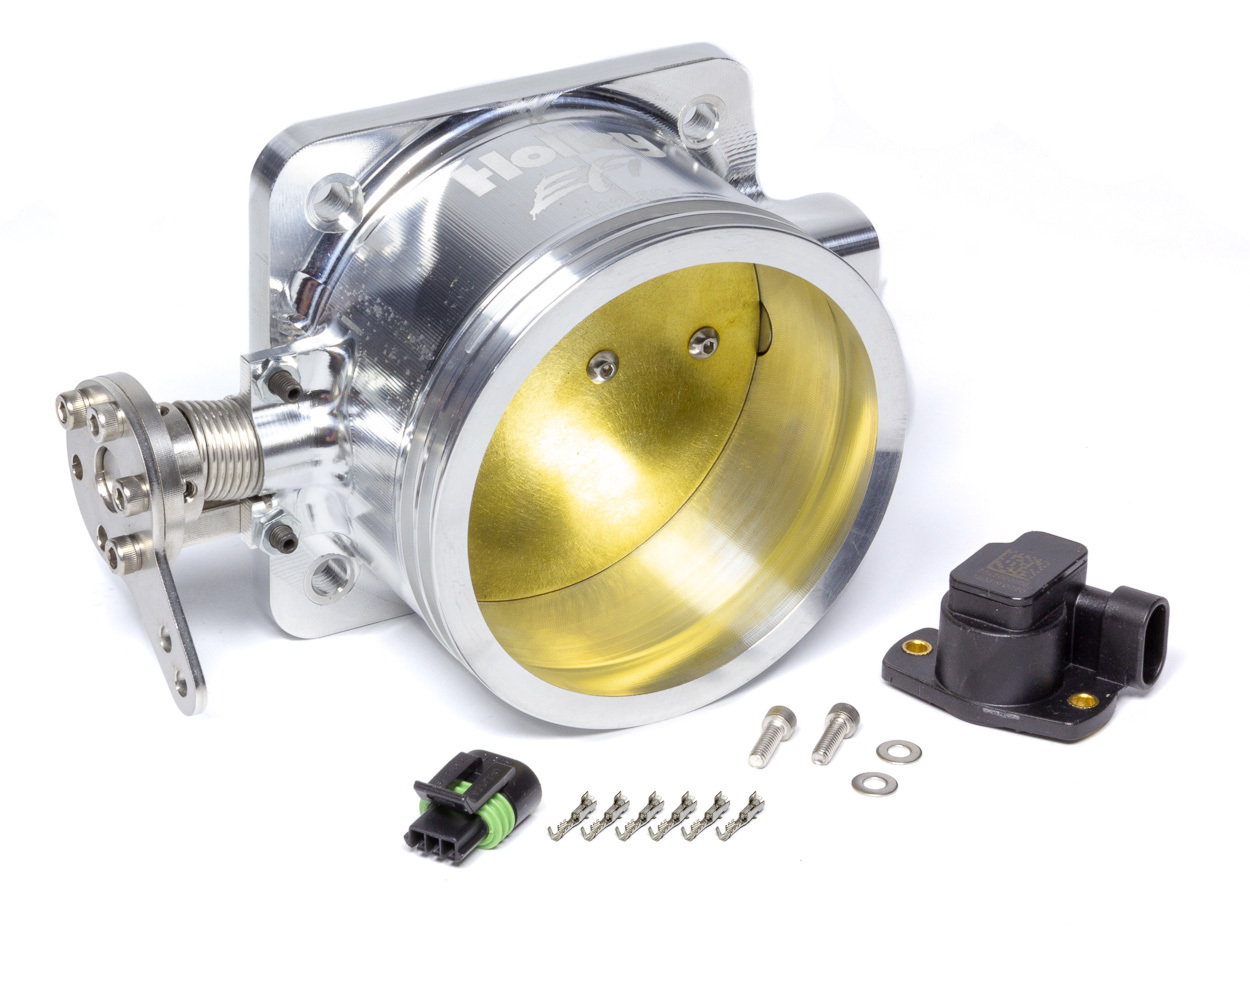 Holley 112-591 Throttle Body, EFI Mono-Blade, 4-Bolt Stock Flange, 105 mm Single Blade, Dual O-Ring, Billet Aluminum, Natural, Small Block Ford, Each